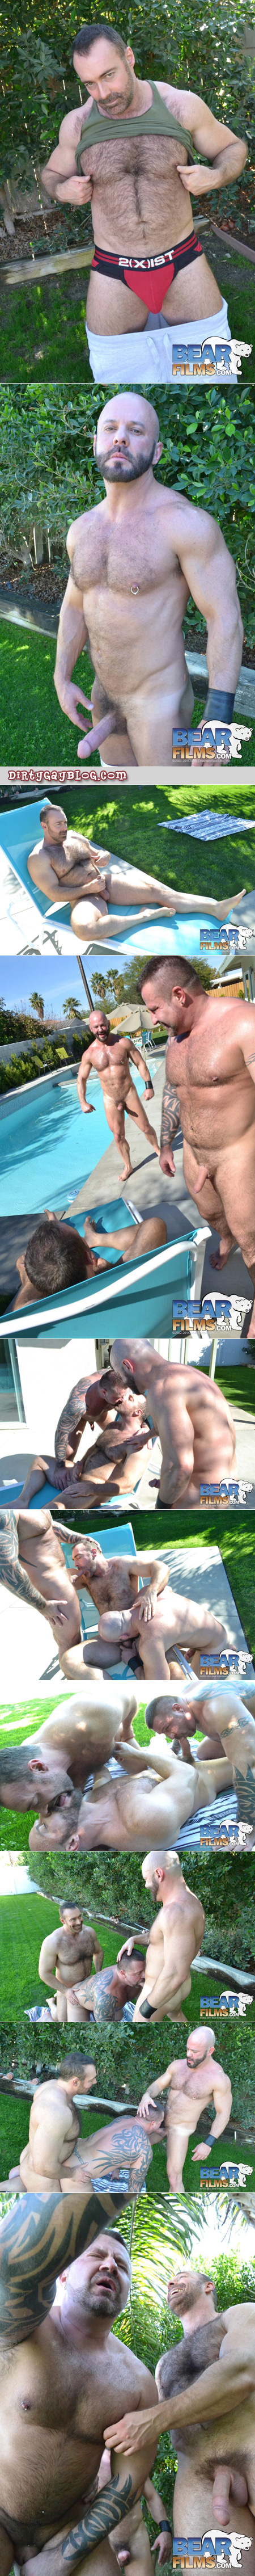 Hairy bears have a threeway outside by the pool.